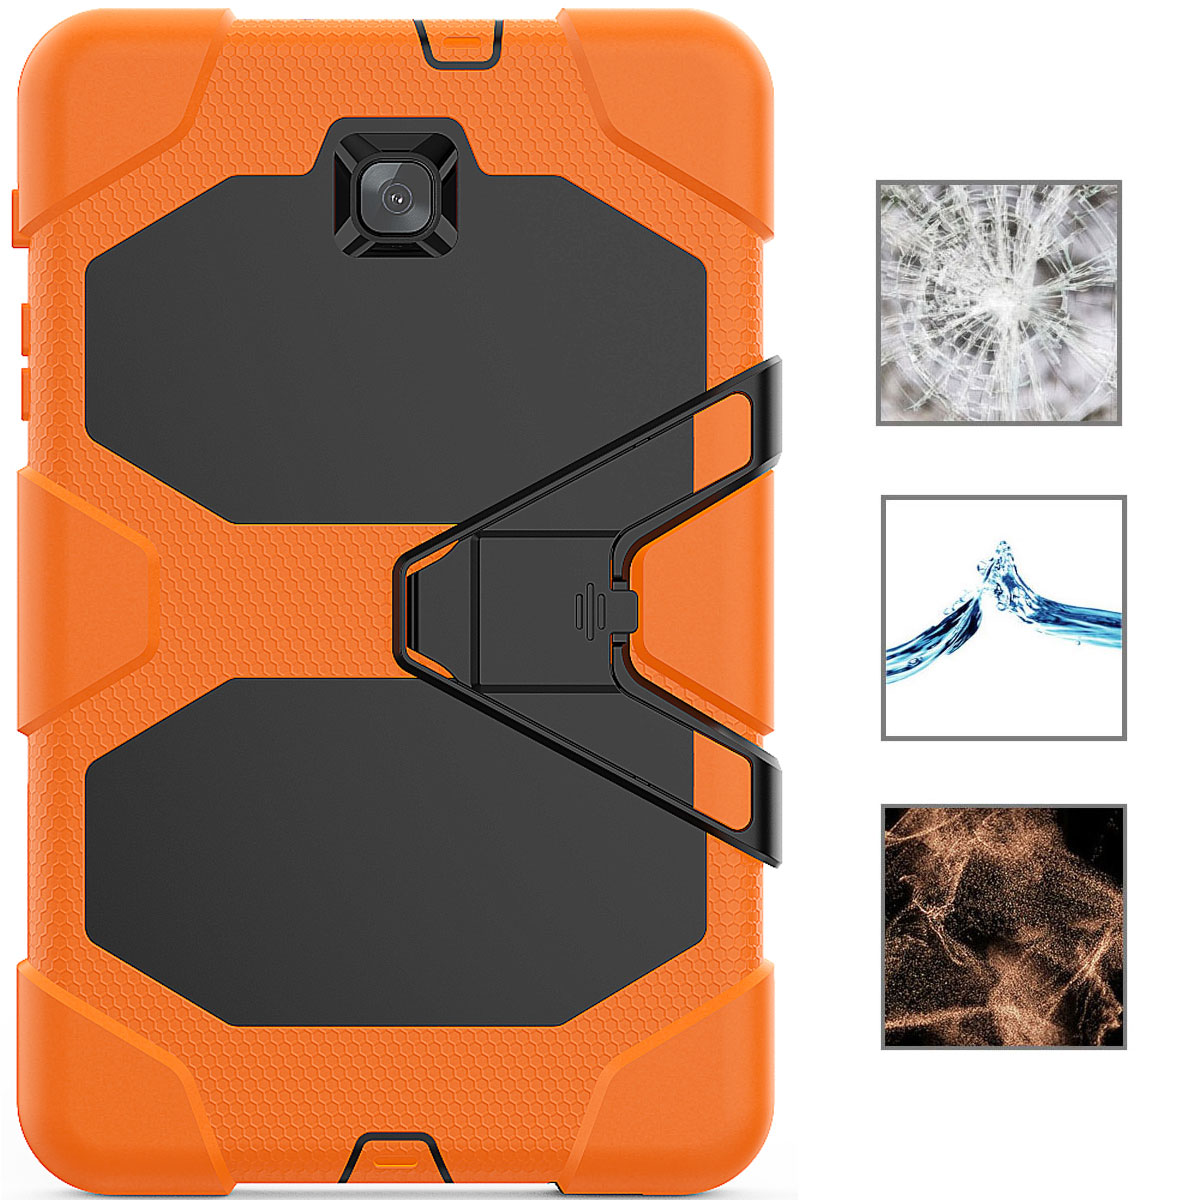 Rugged-Hard-Case-For-Samsung-Galaxy-Tab-A-8-0-2018-SM-T387-with-Screen-Protector thumbnail 45